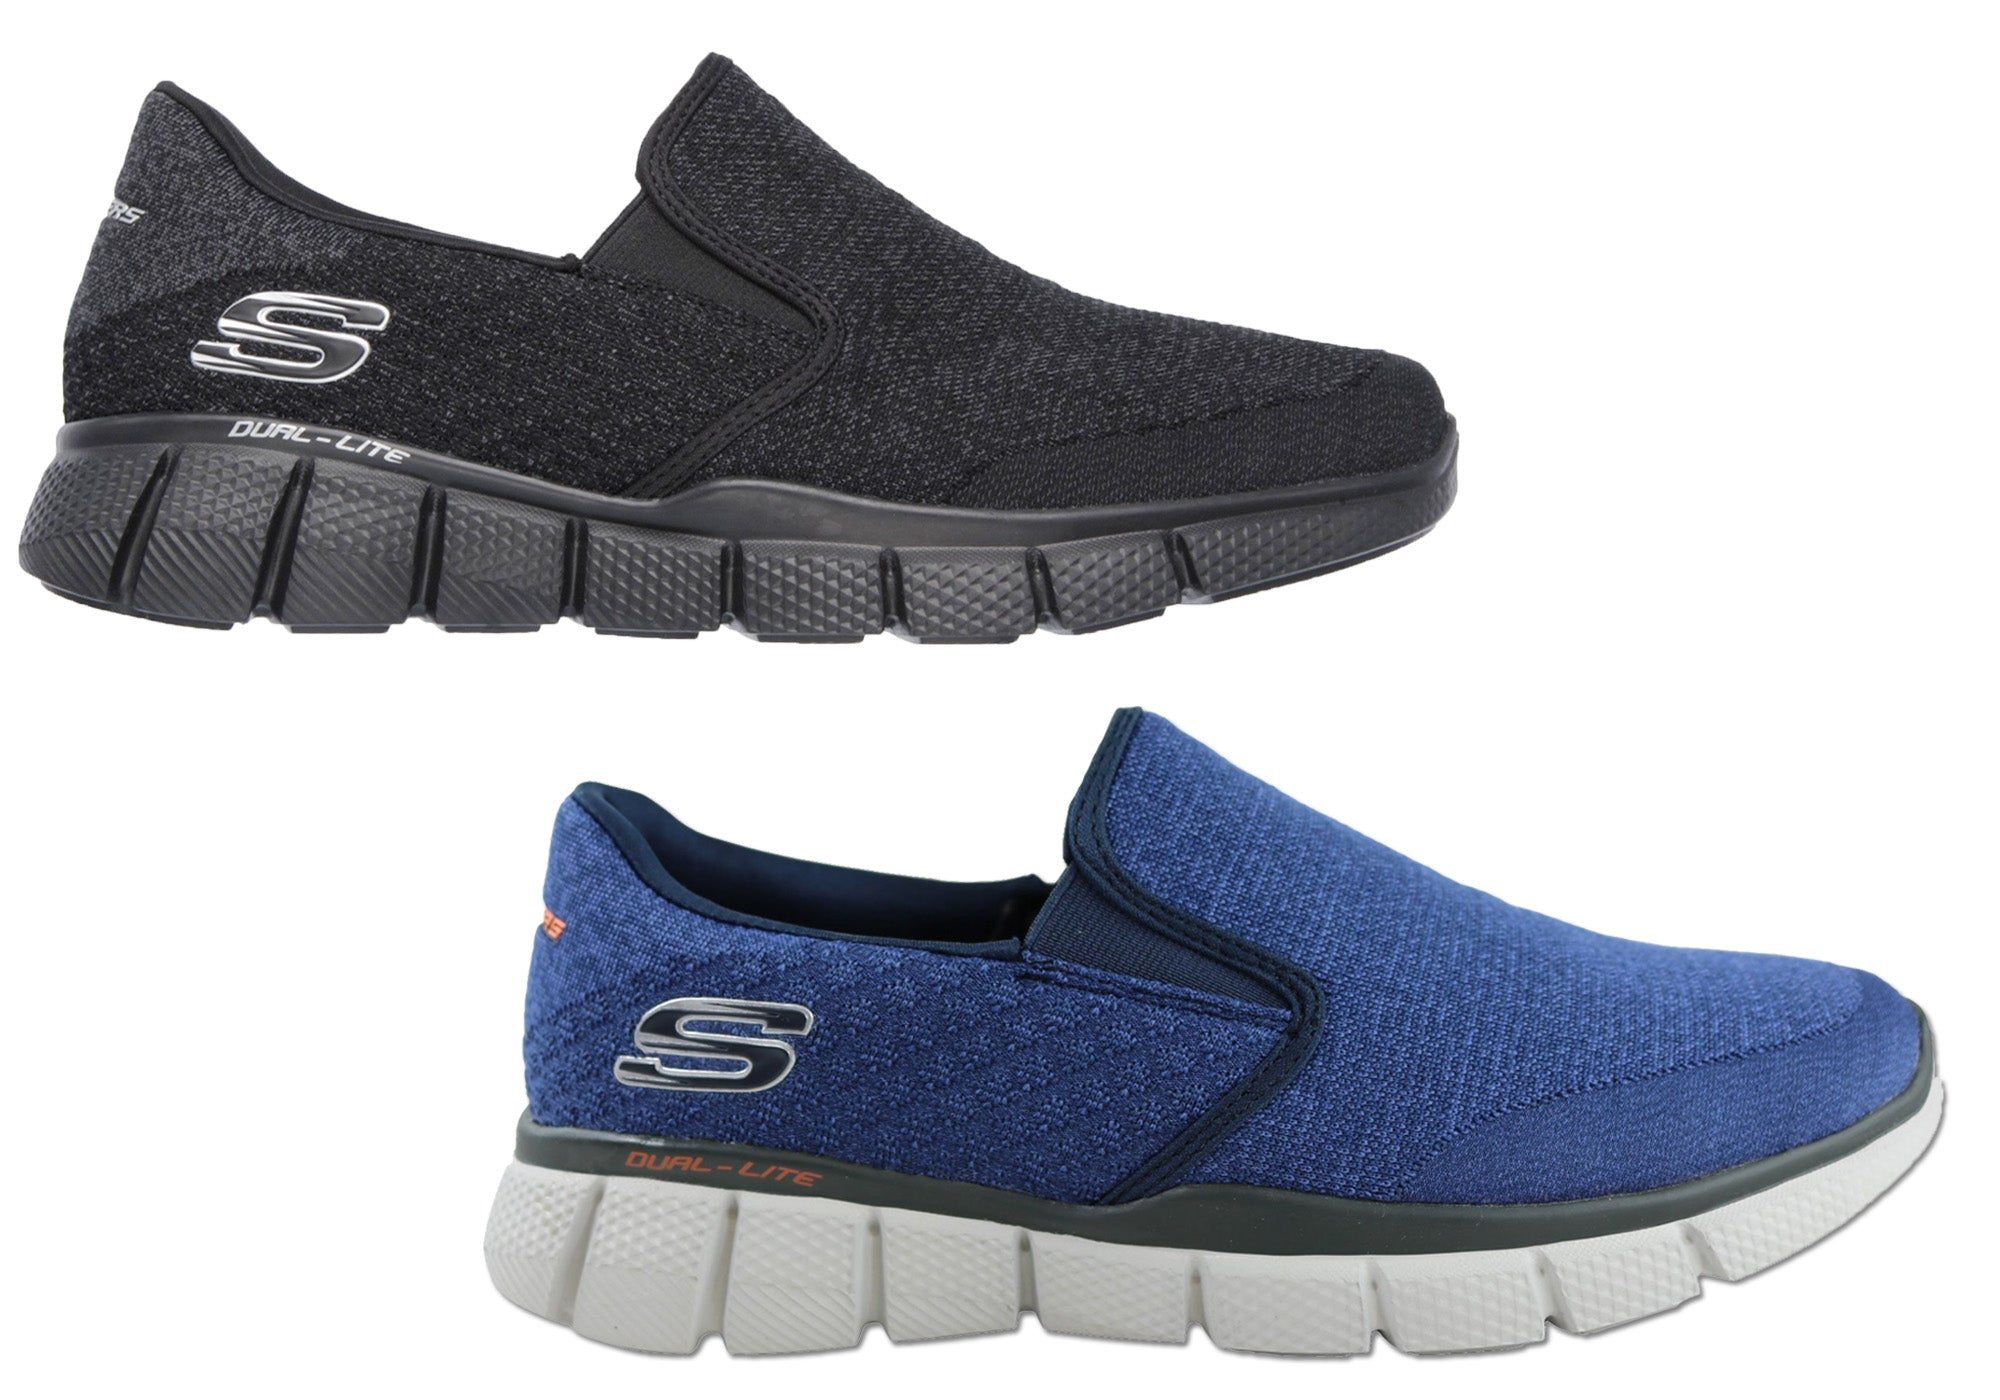 1b041dff31f NEW SKECHERS EQUALIZER 2.0 MENS MEMORY FOAM SLIP ON SHOES